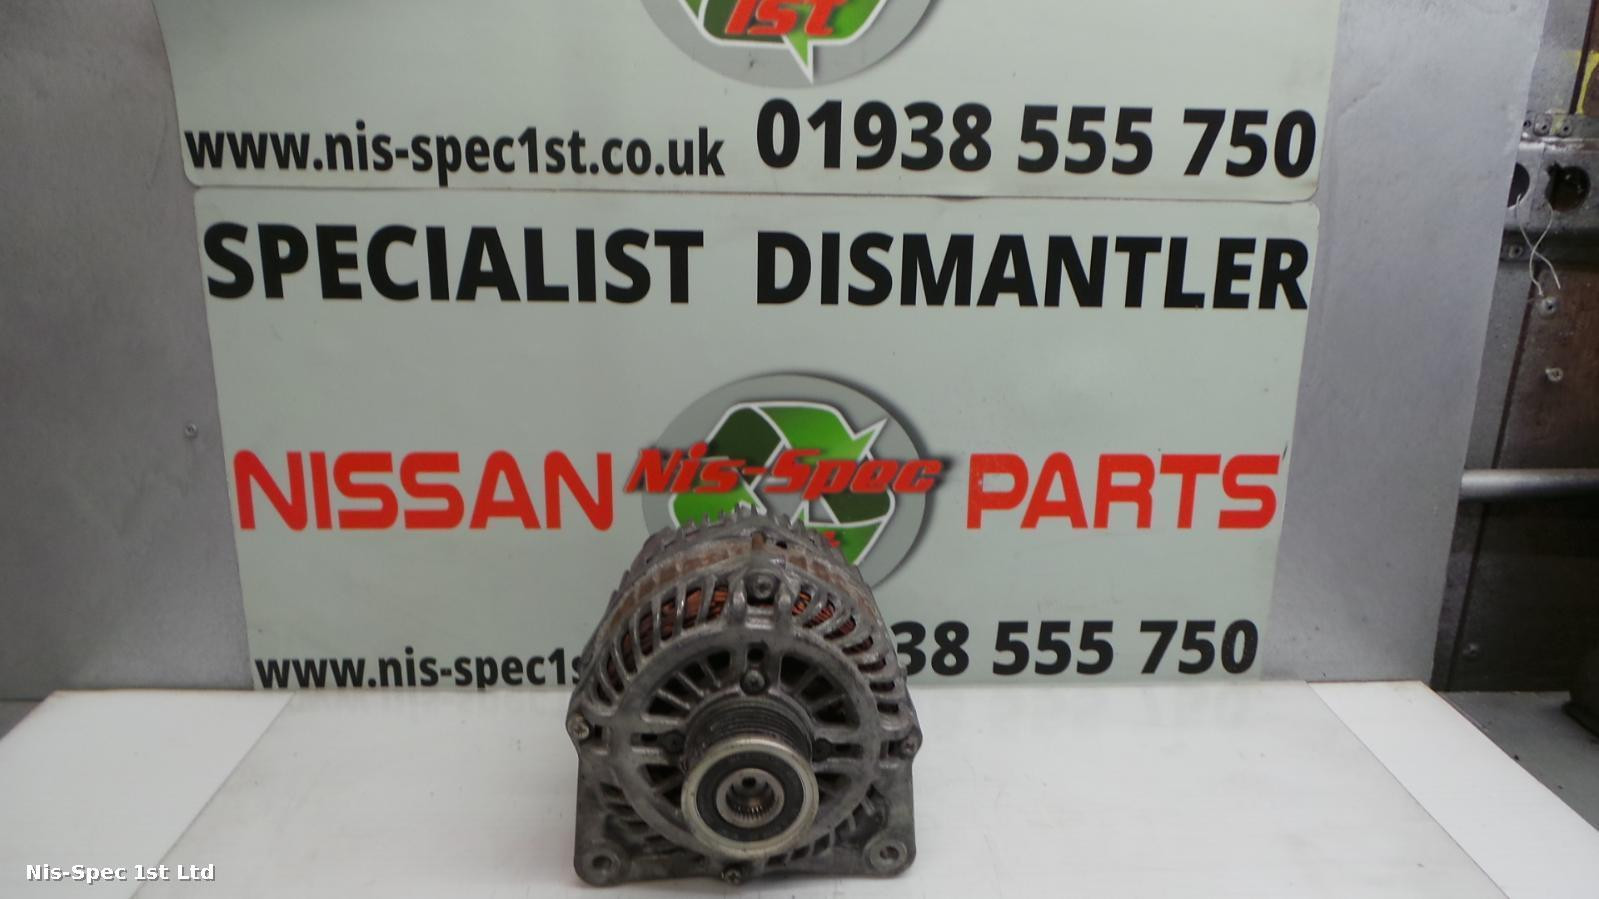 QASHQAI ALTERNATOR J10 10-13 1.6 DIESEL PART NUMBER 23100 JD71B